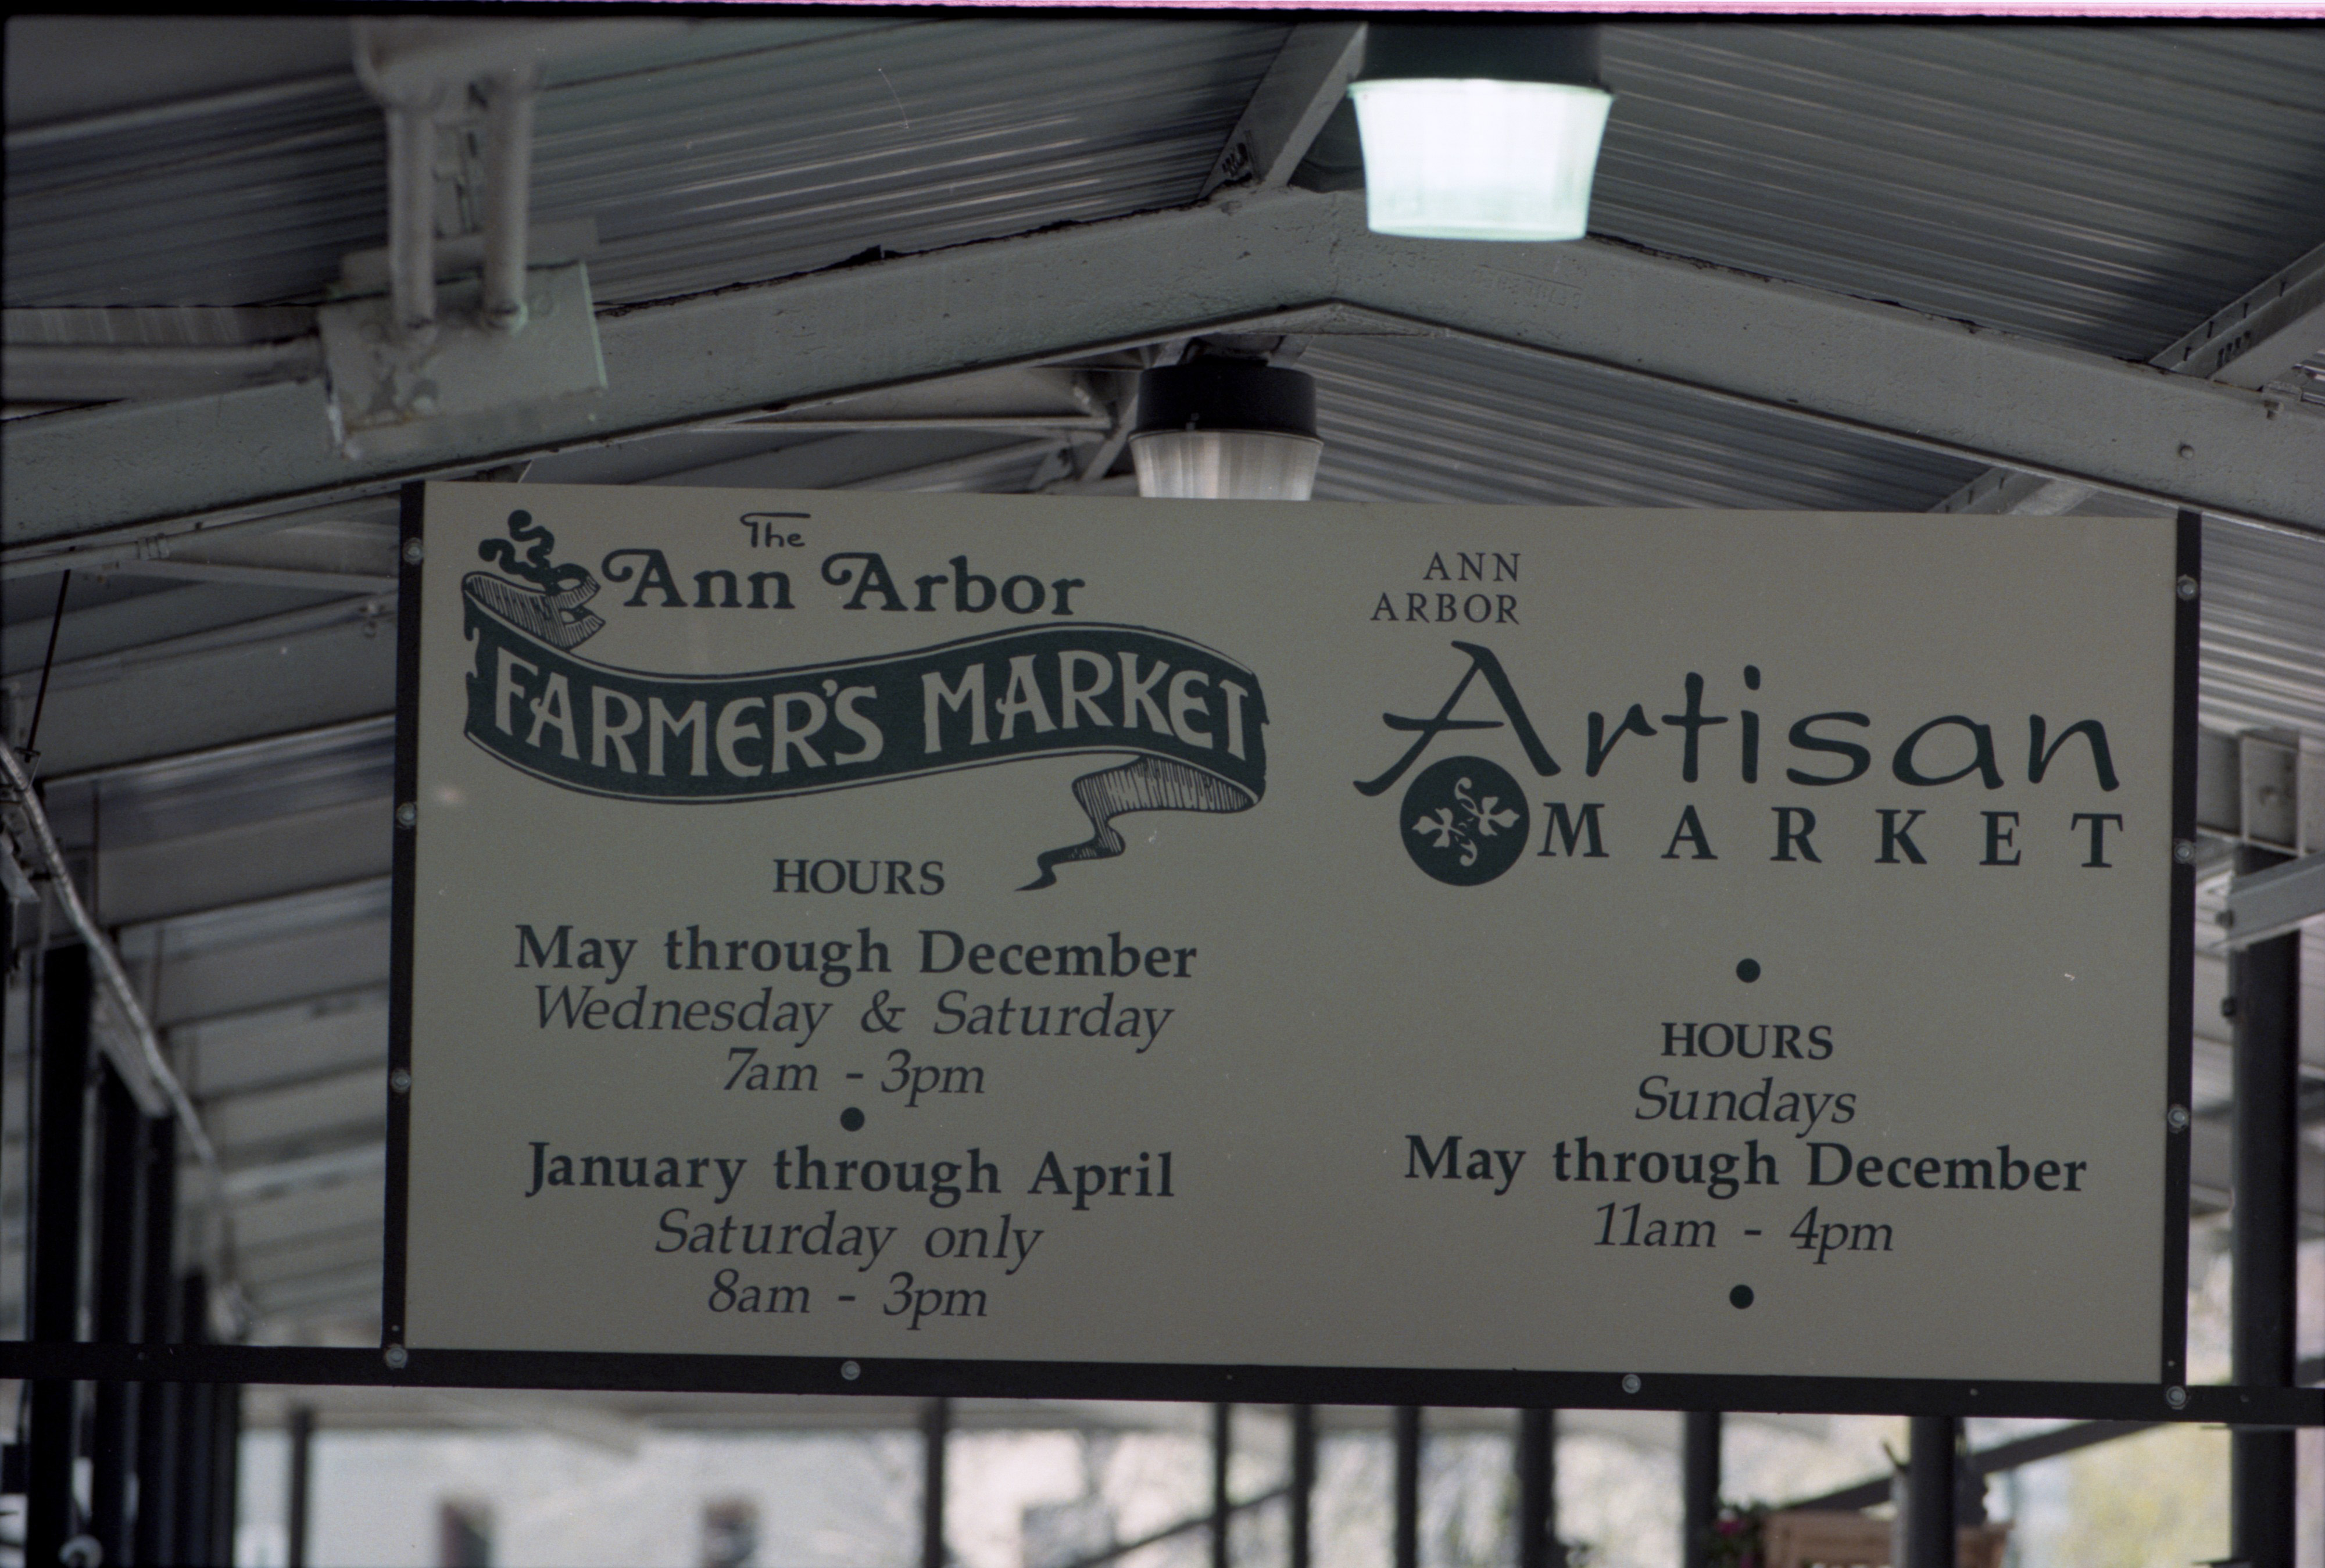 Ann Arbor Farmer's Market Sign, May 1997 image